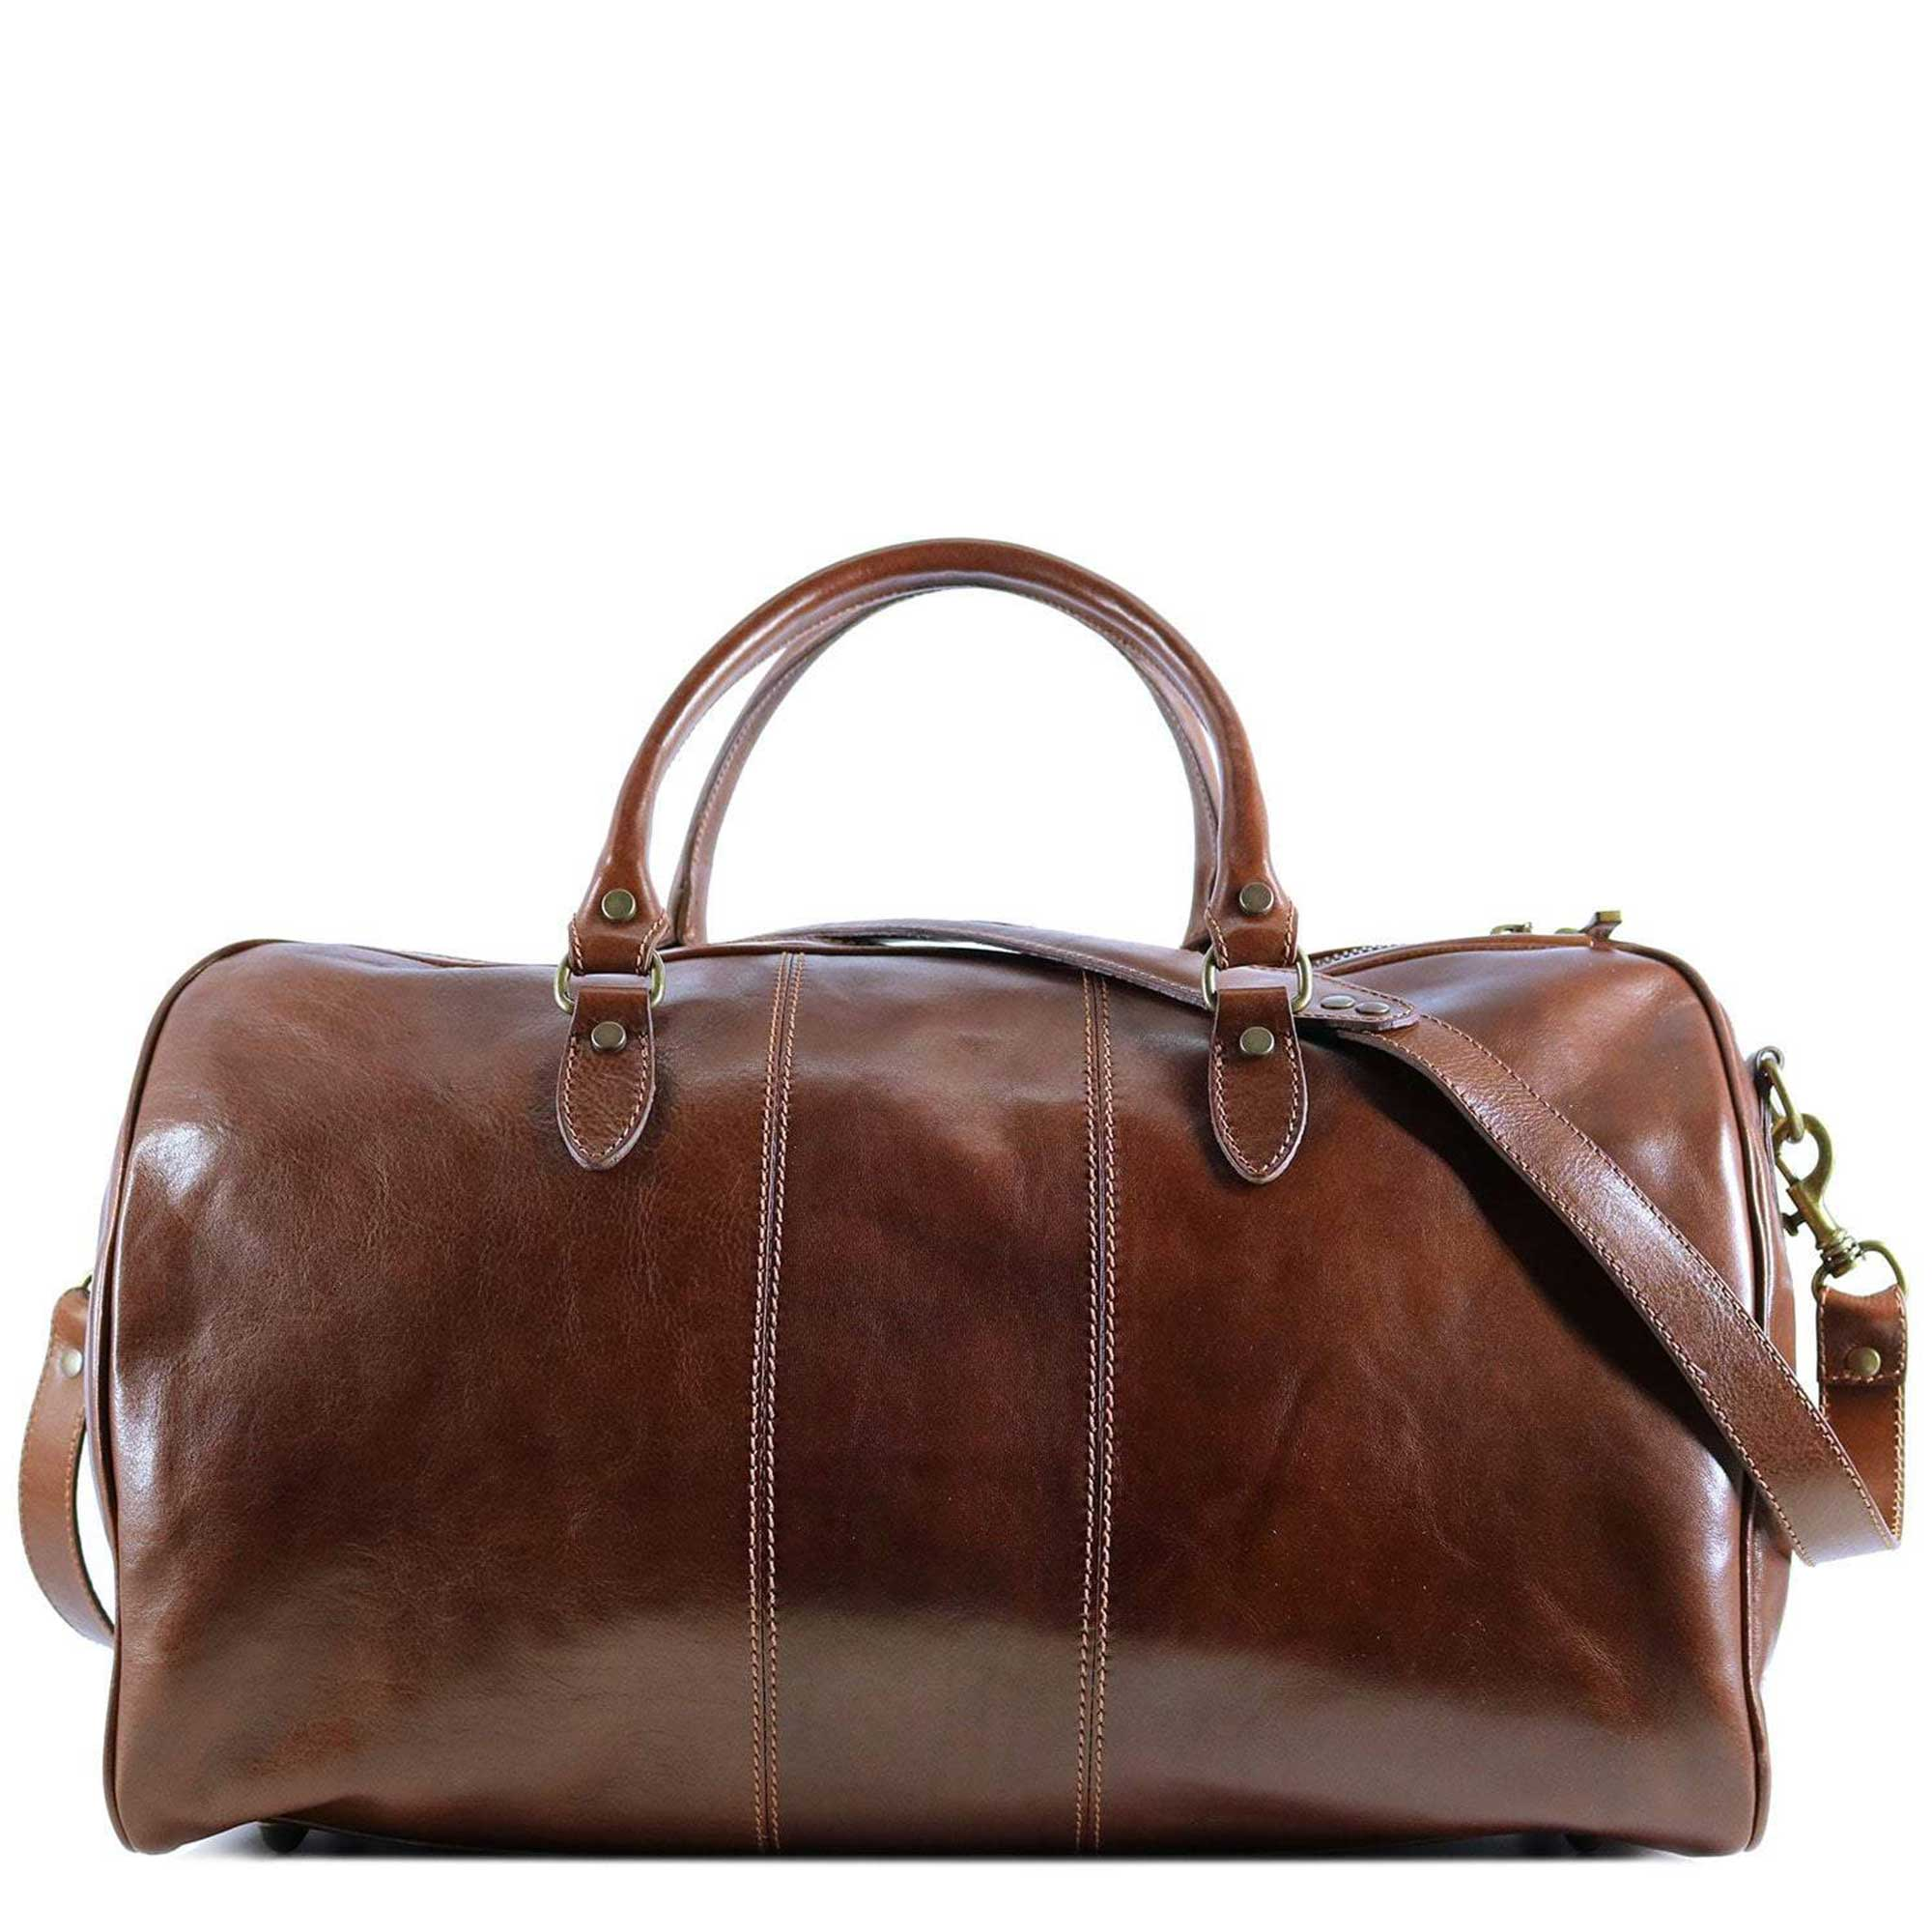 Vegetable Tanned Italian Leather Travel Garment Carryon Weekender Duffle Bags by Floto - offered by DiLoro Switzerland